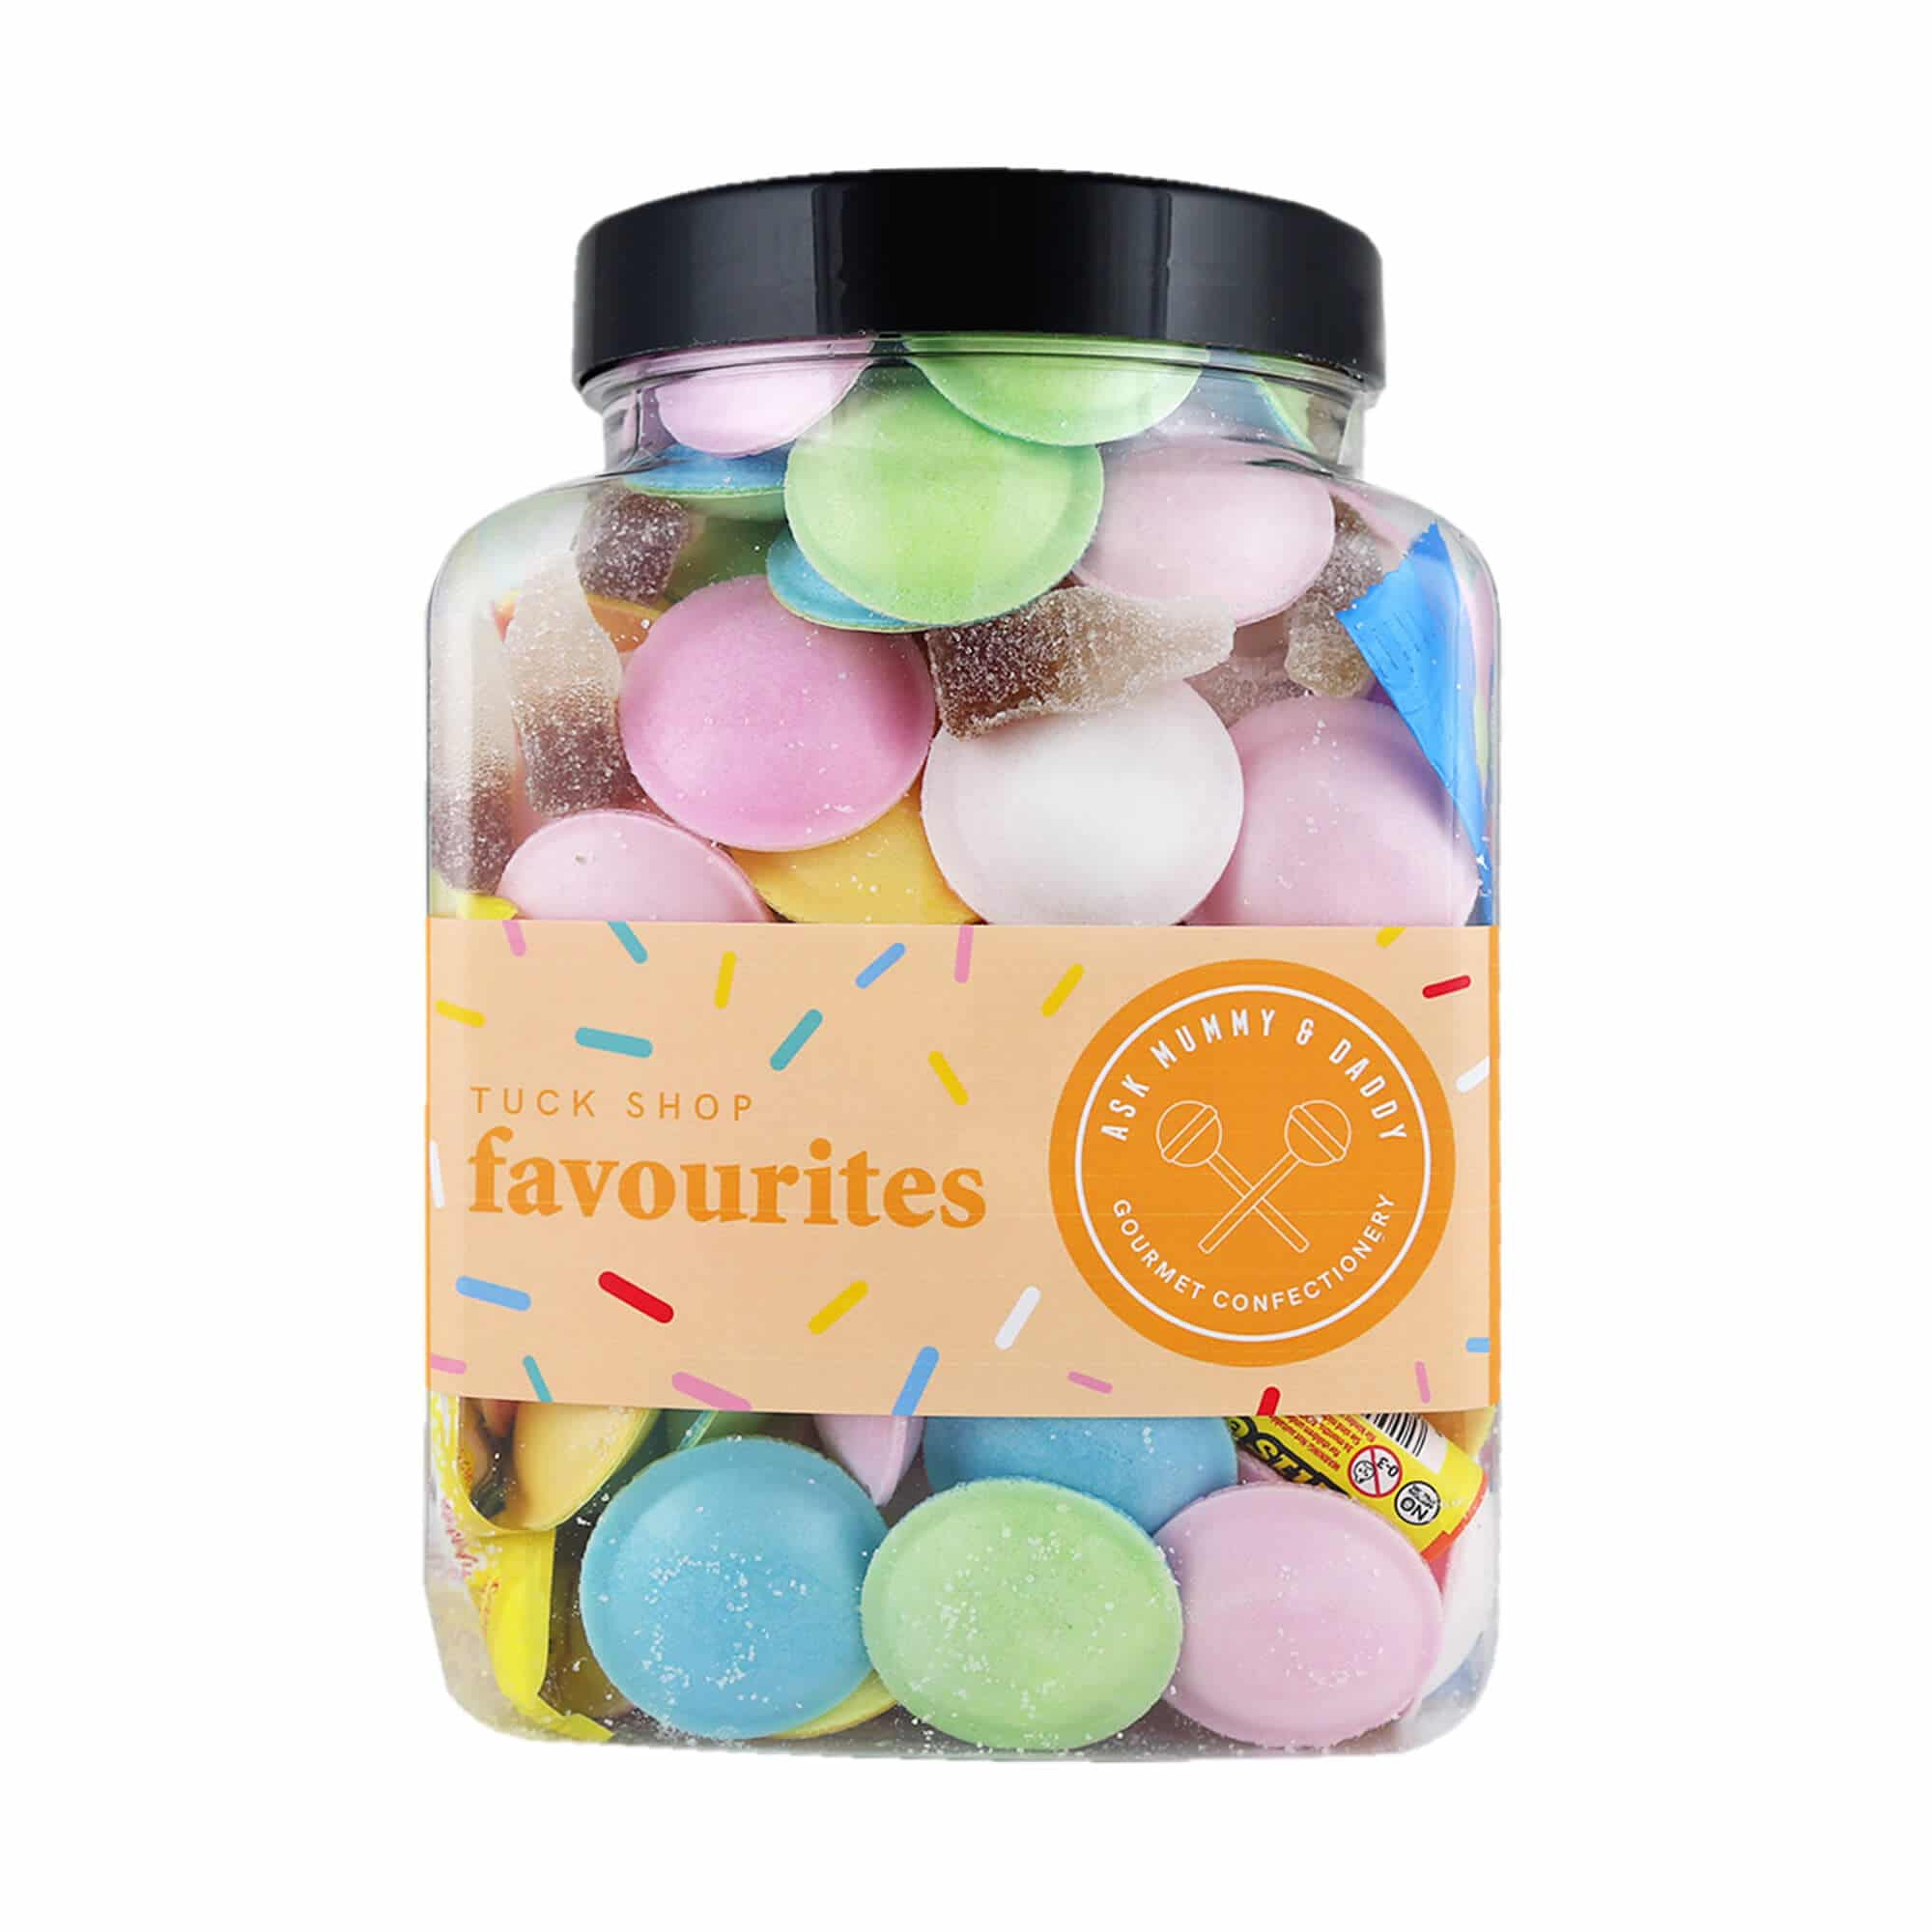 A jar of old school favourite sweets